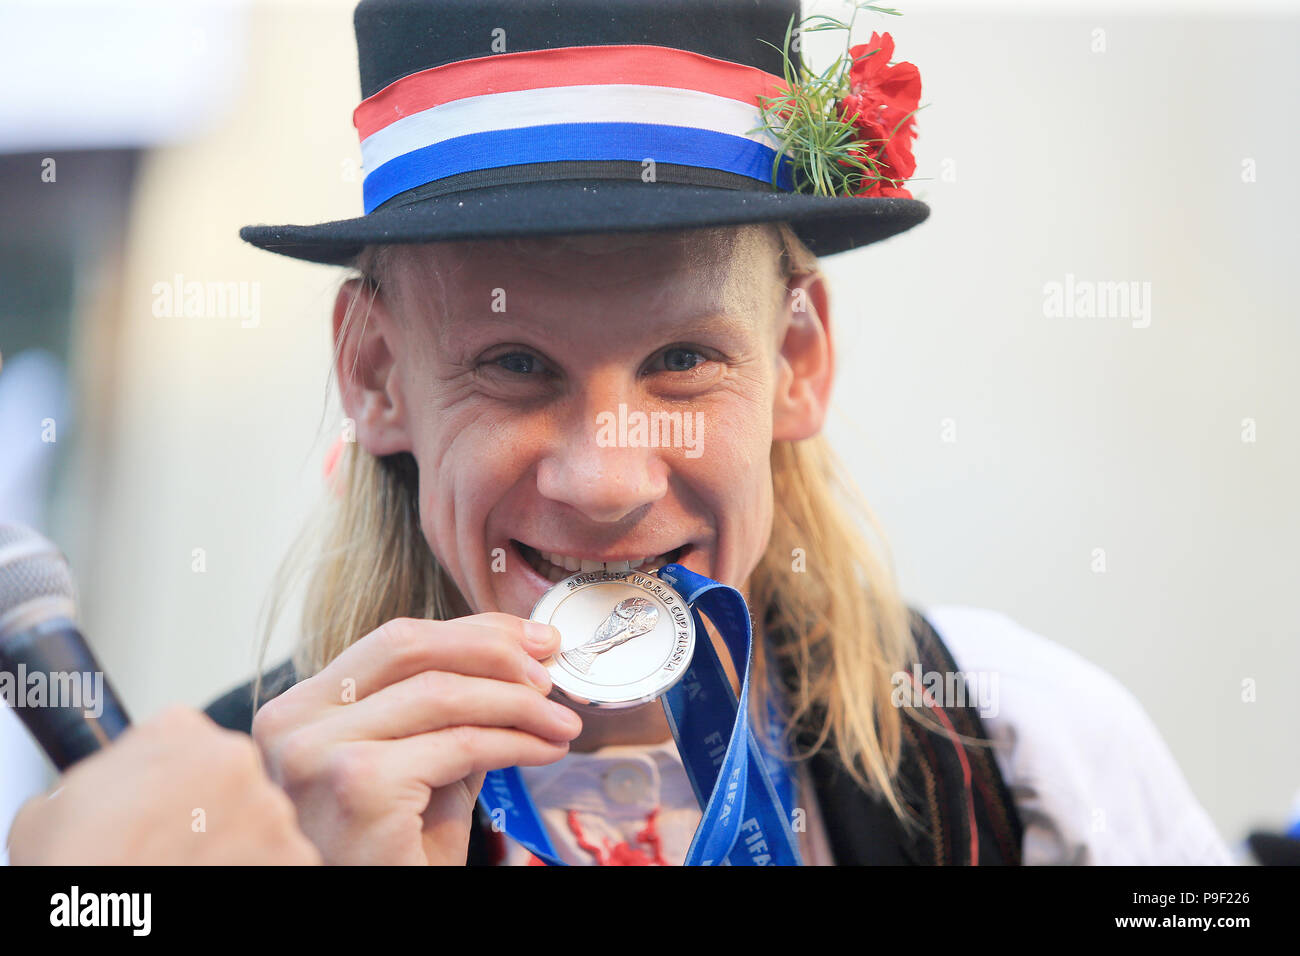 Donji Miholjac, Croatia. 17th July, 2018. Croatian football player Domagoj Vida bites his World Cup medal during celebration in Donji Miholjac, Croatia, on July 17, 2018. Croatia won the second place at the 2018 FIFA World Cup in Russia. Credit: Dino Stanin/Xinhua/Alamy Live NewsStock Photo